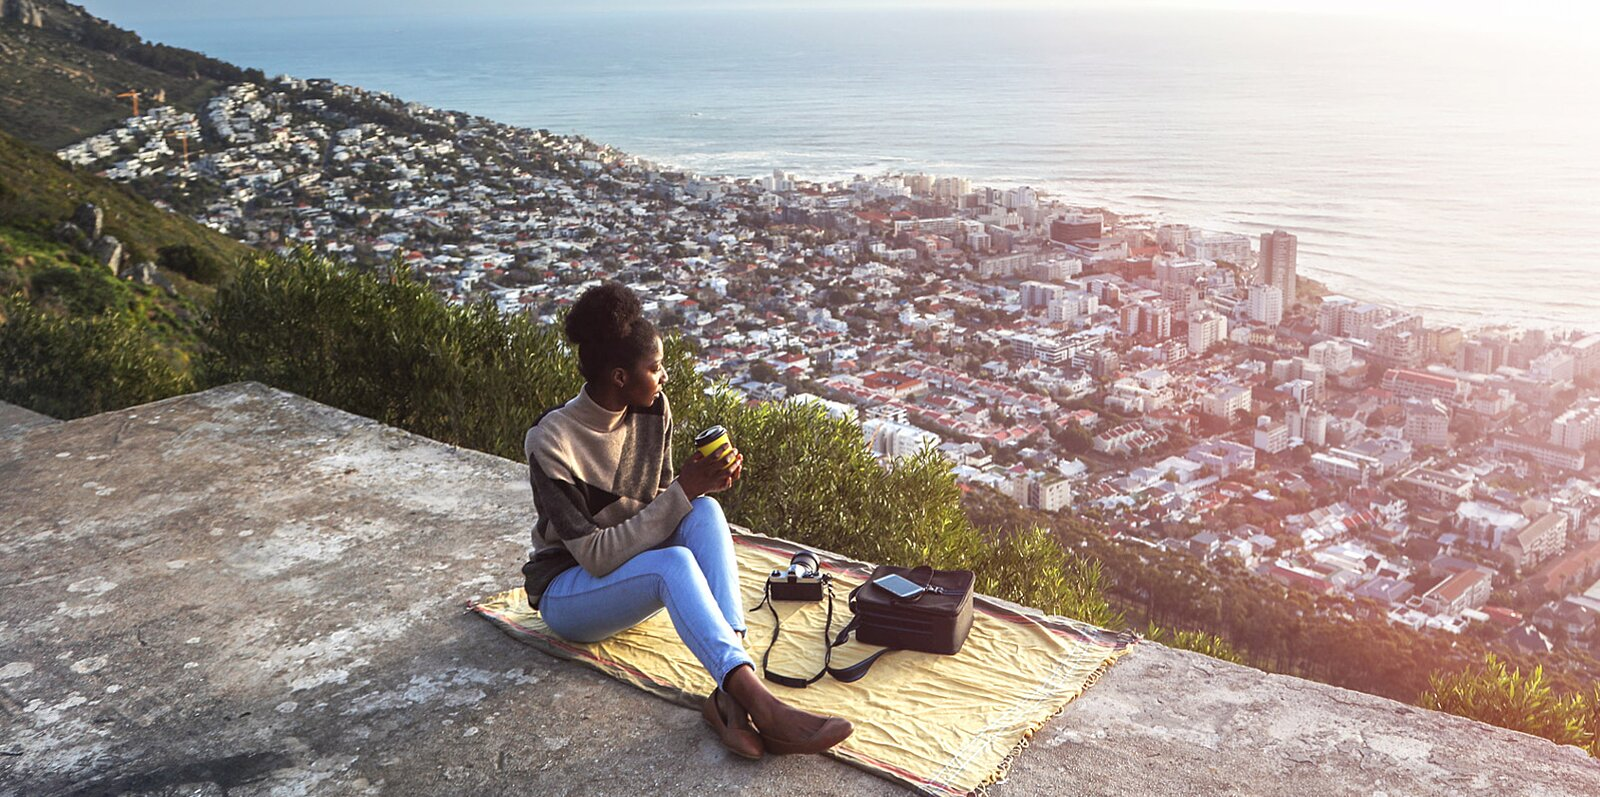 Flat Shoes: Tackle an Entire Day of Sightseeing